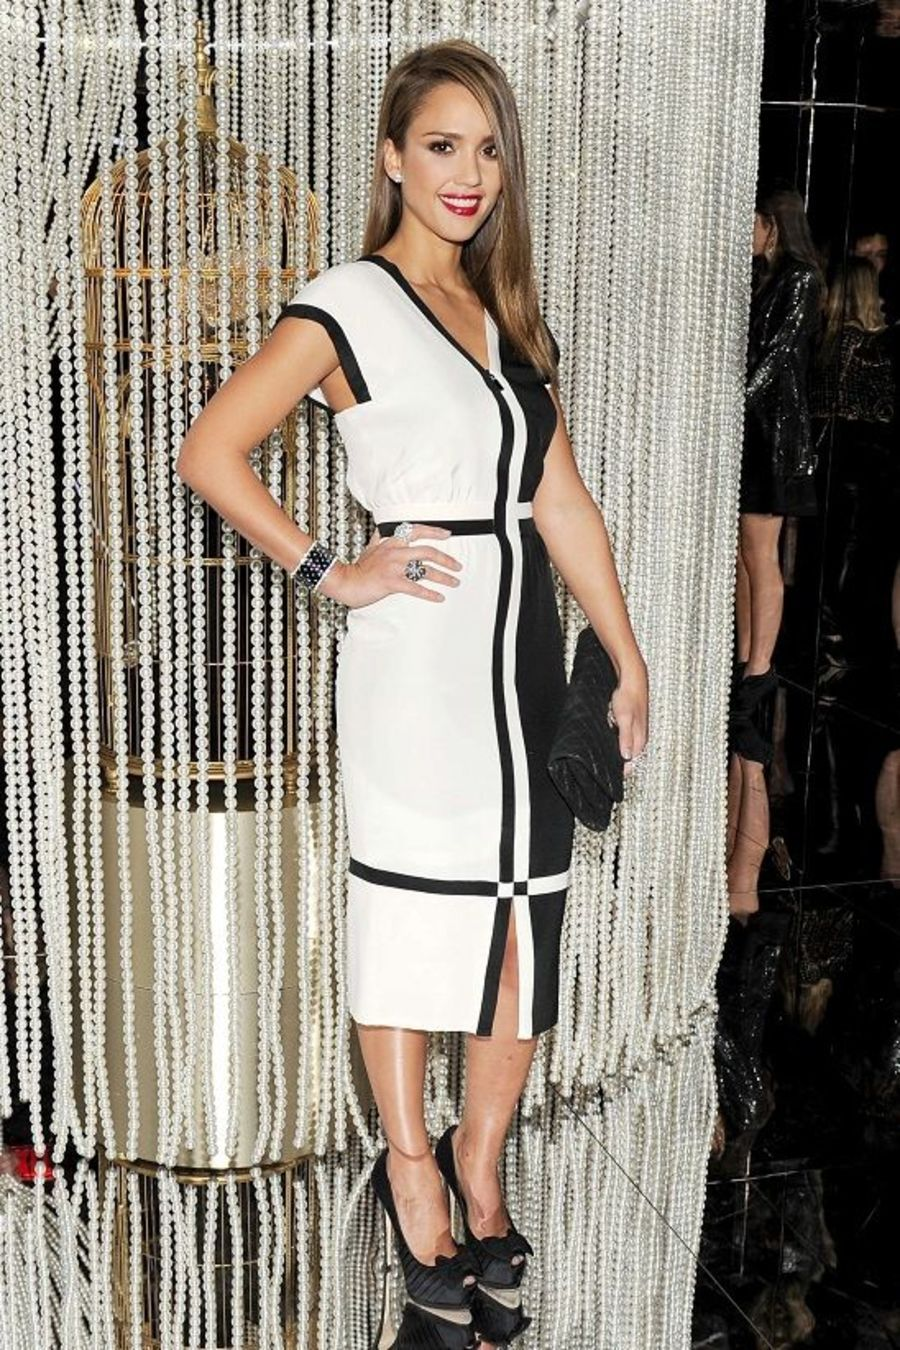 Chanel Dress @Michelle Coleman-HERS